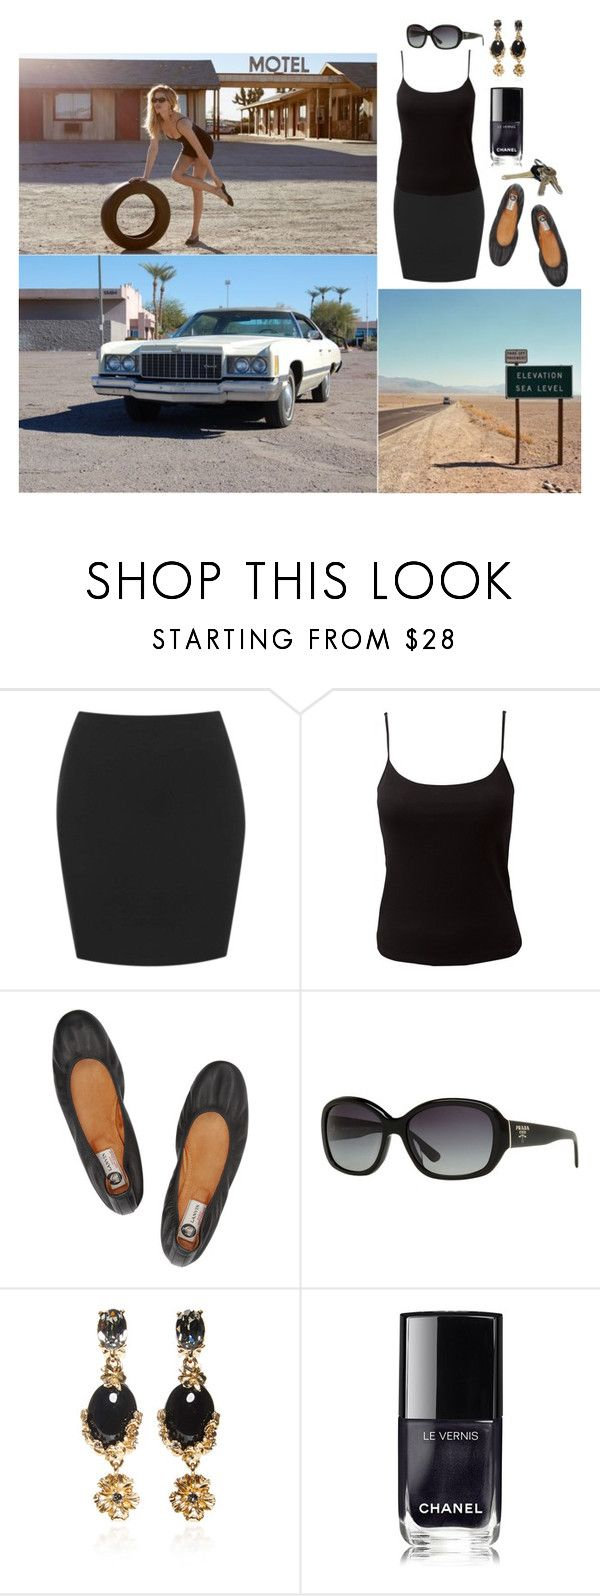 """""""An All-Black Diva's Likelihood of Survival???"""" by chrisiggy ❤ liked on Polyvore featuring Caprice, EAST, Lanvin, Prada, Oscar de la Renta, Avon and Chanel"""